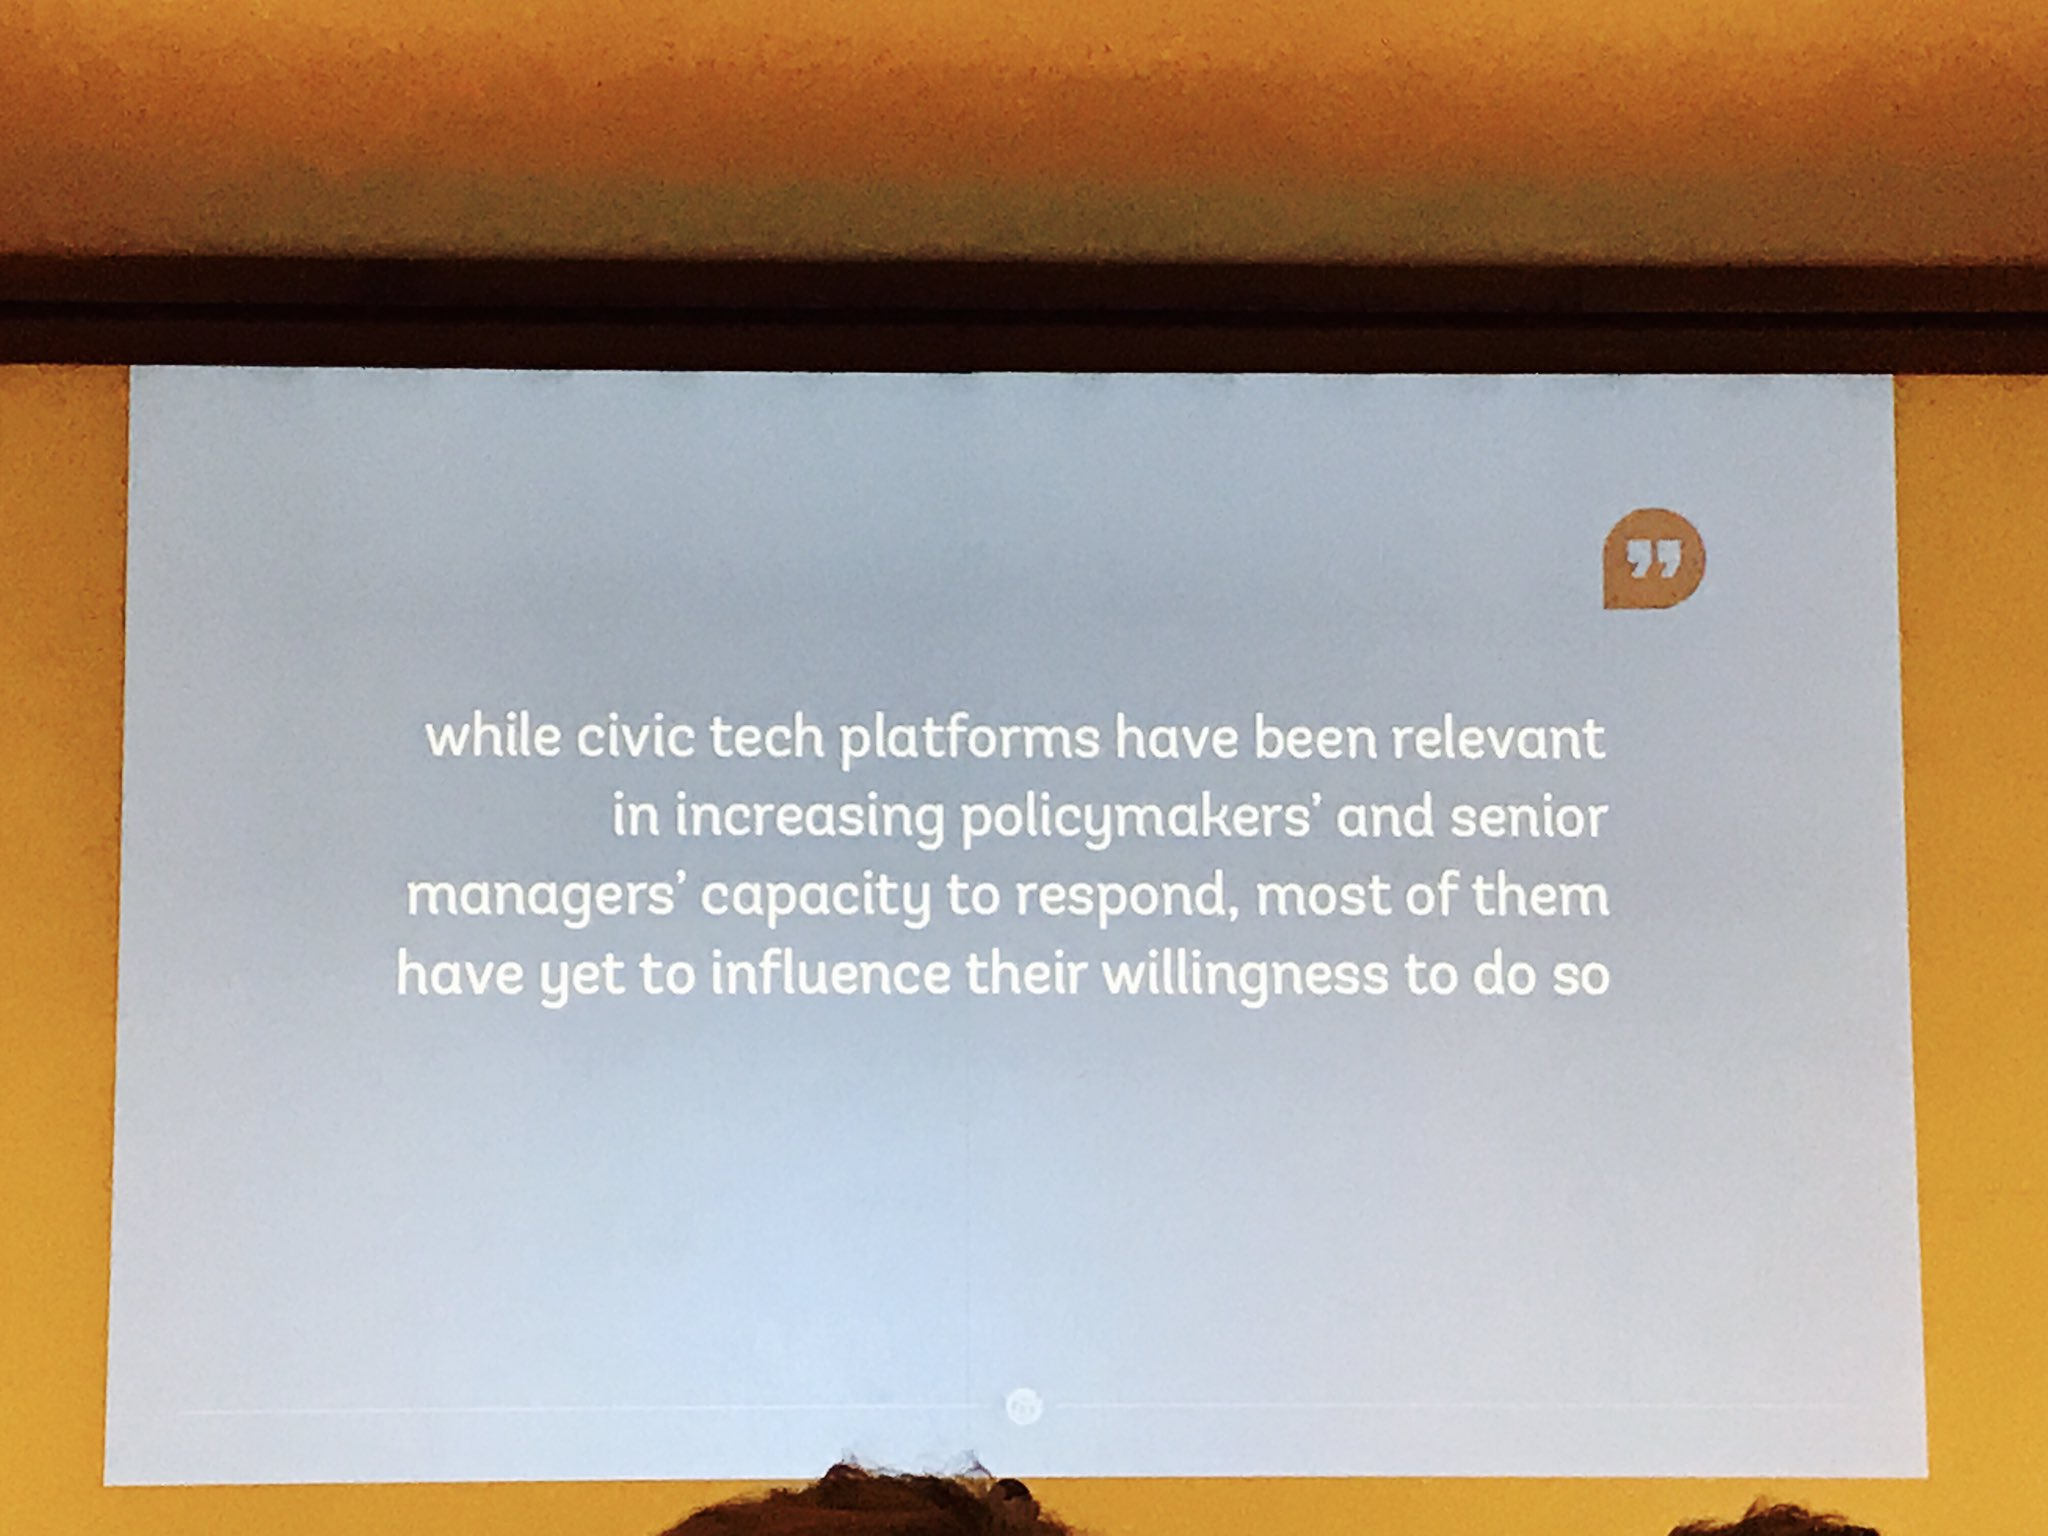 Key point: #civictech has increased Govt managers' capacity to respond but not their willingness @participatory #tictec https://t.co/xmkJV2bKE8